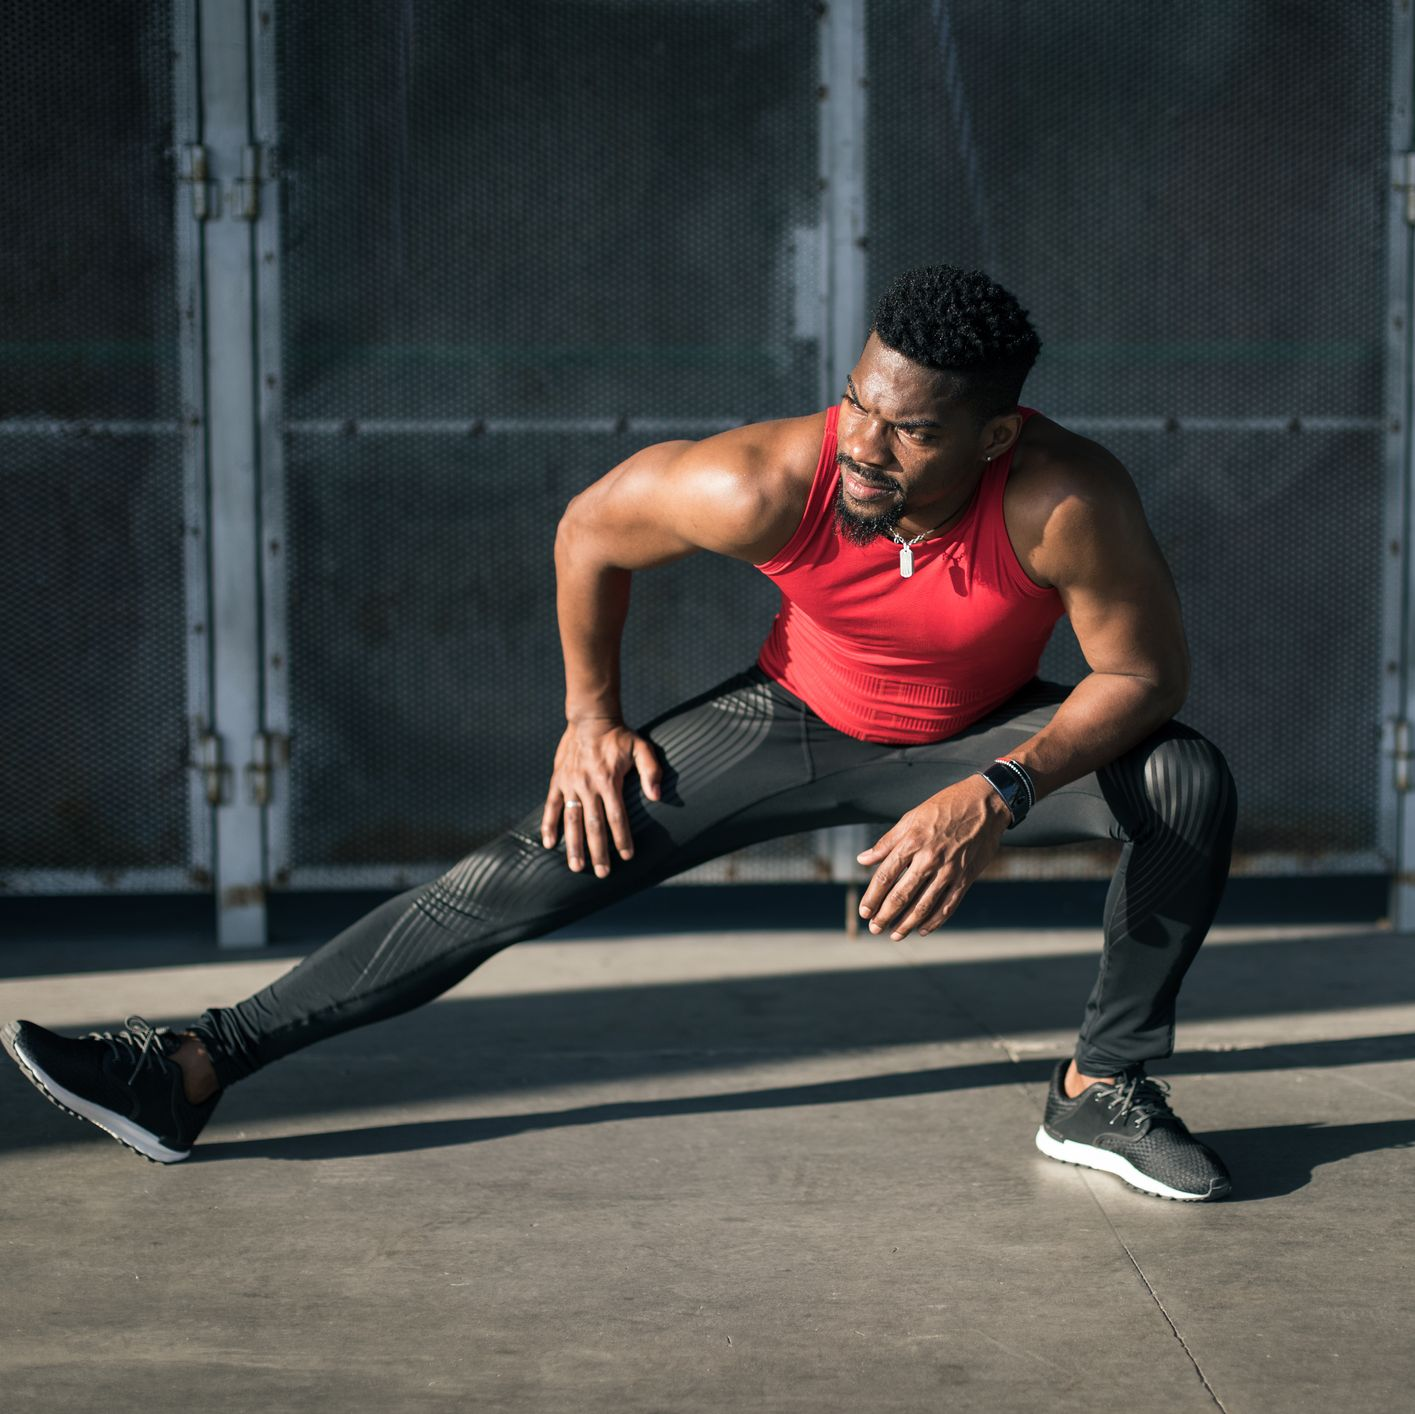 This Lower-Body Exercise Can Cut Your Injury Risk in Half. Are You Doing It?